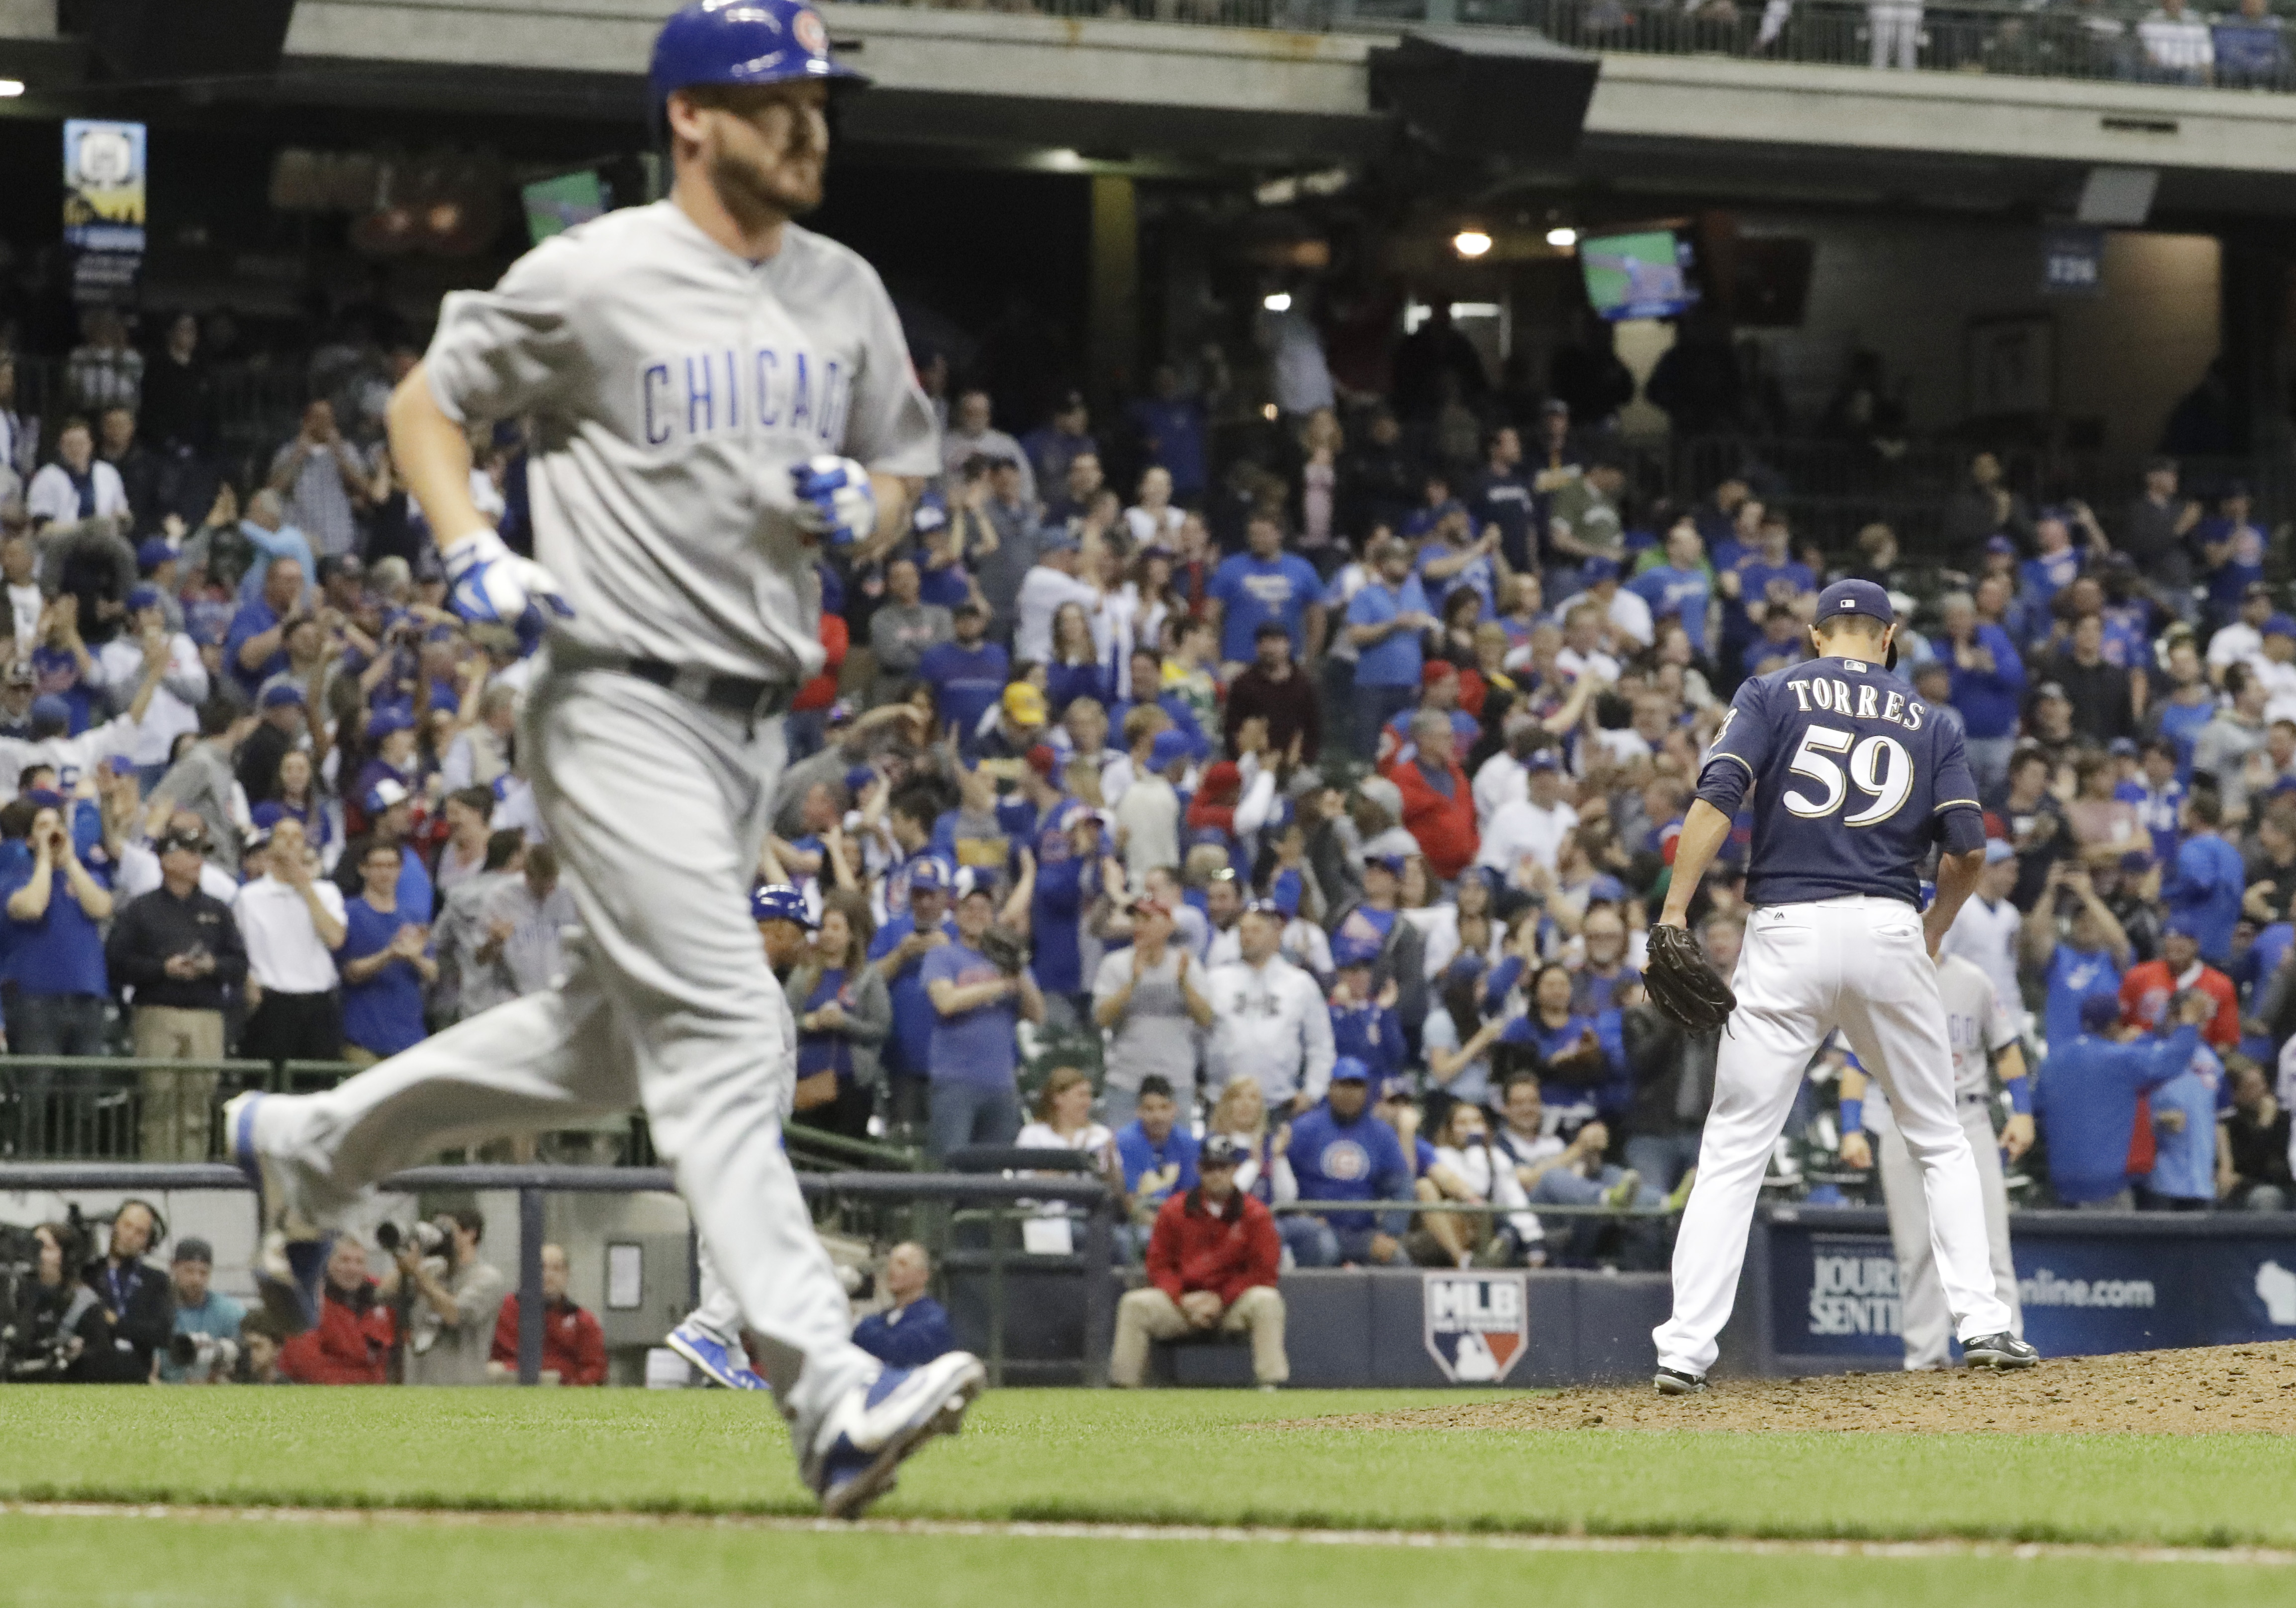 Milwaukee Brewers relief pitcher Carlos Torres sands on the mound as Chicago Cubs' Travis Wood walks to first during the 13th inning of a baseball game Wednesday, May 18, 2016, in Milwaukee. Wood walked with bases loaded. (AP Photo/Morry Gash)